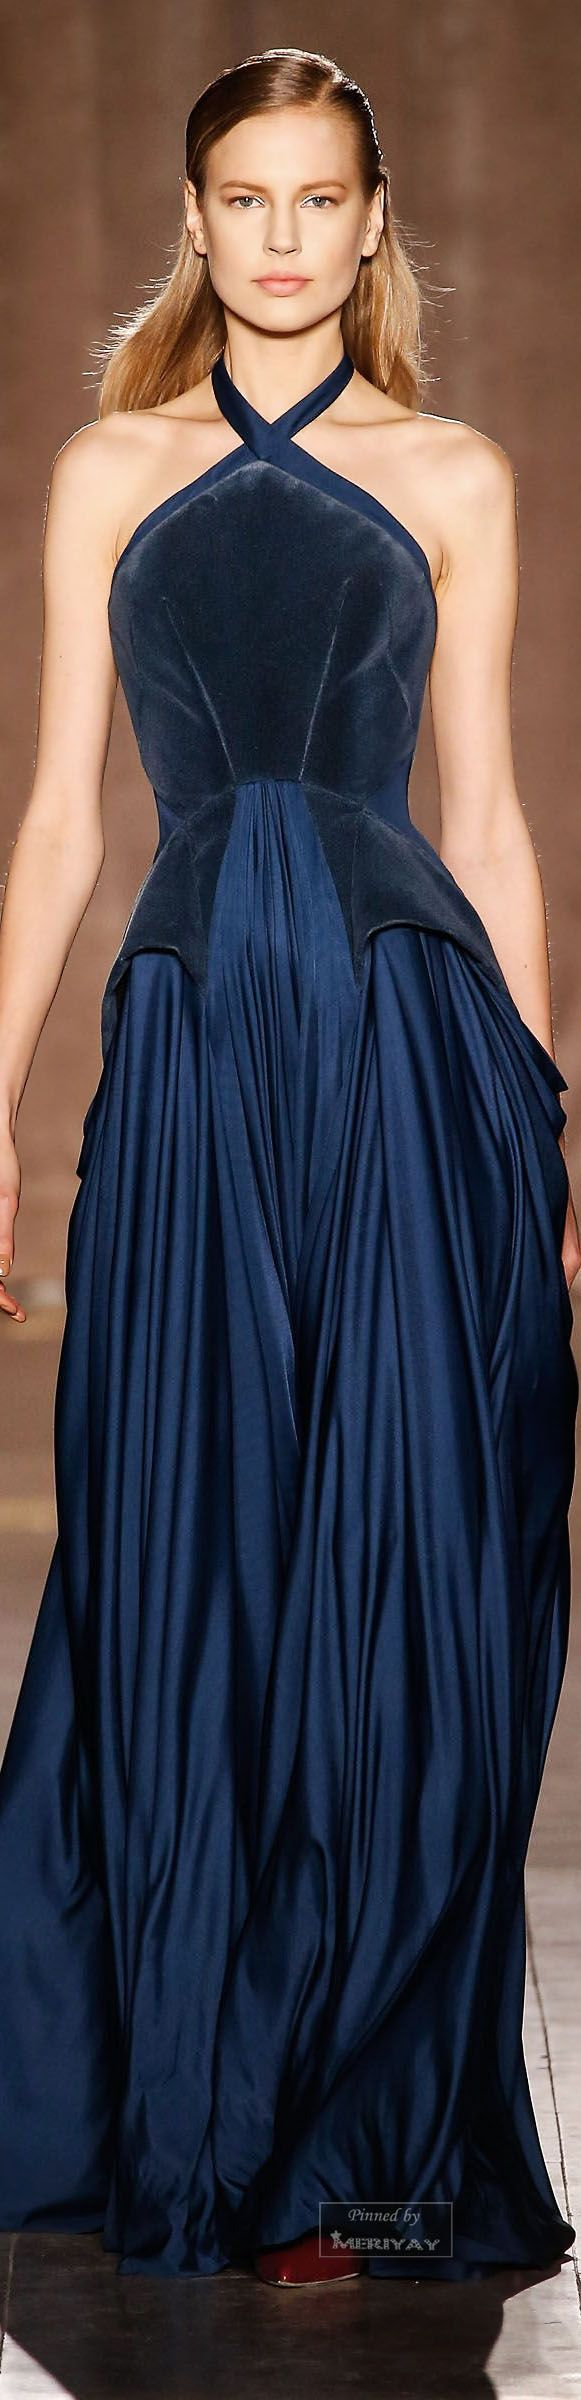 Zac Posen Fall-winter 2015-2016. I'm kind of obsessed with Zac Posen